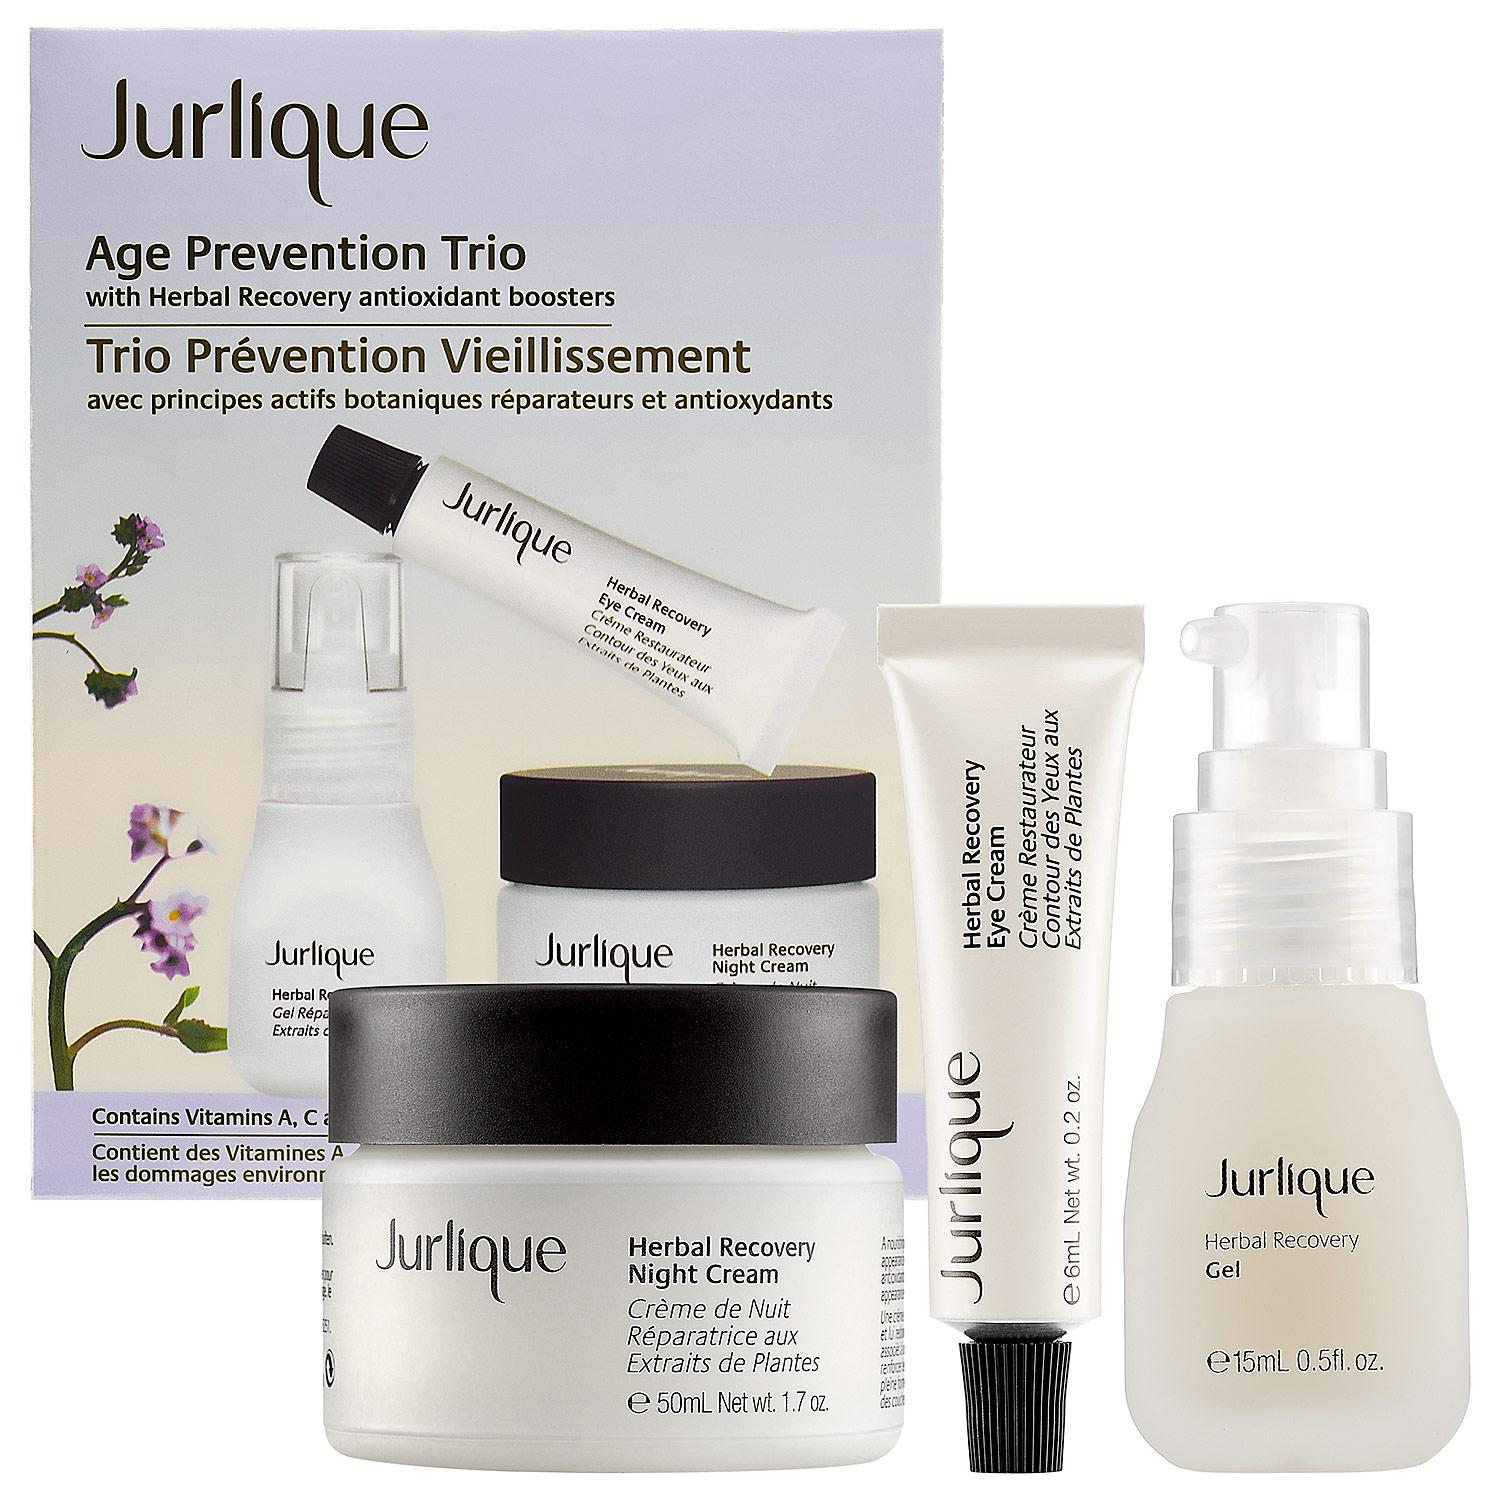 Age Prevention Trio With Herbal Recovery Antioxidant Boosters